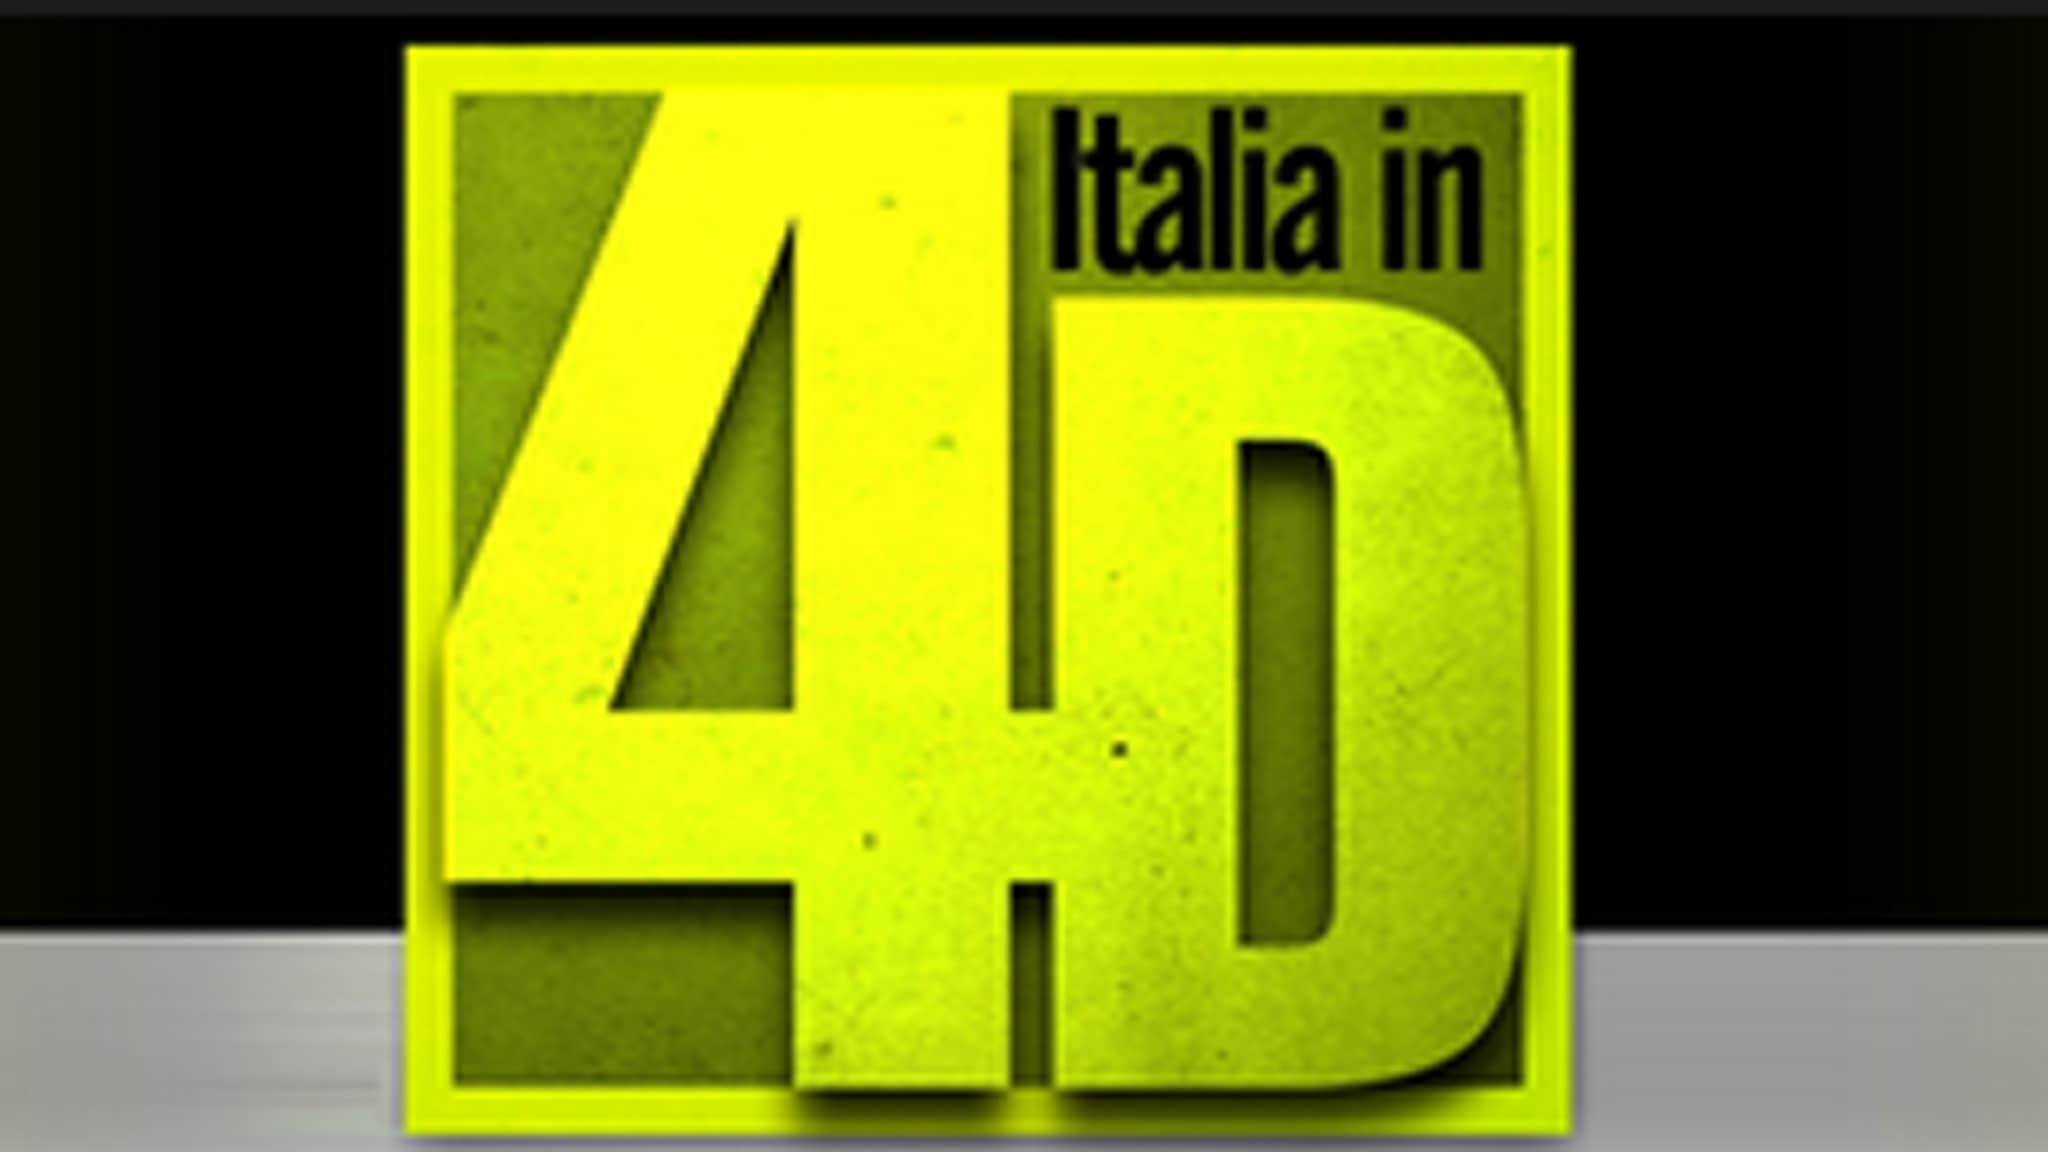 Rai Storia Tablet. Italia in 4d. La bottega del cinema. 40 anni di industria cinematografica